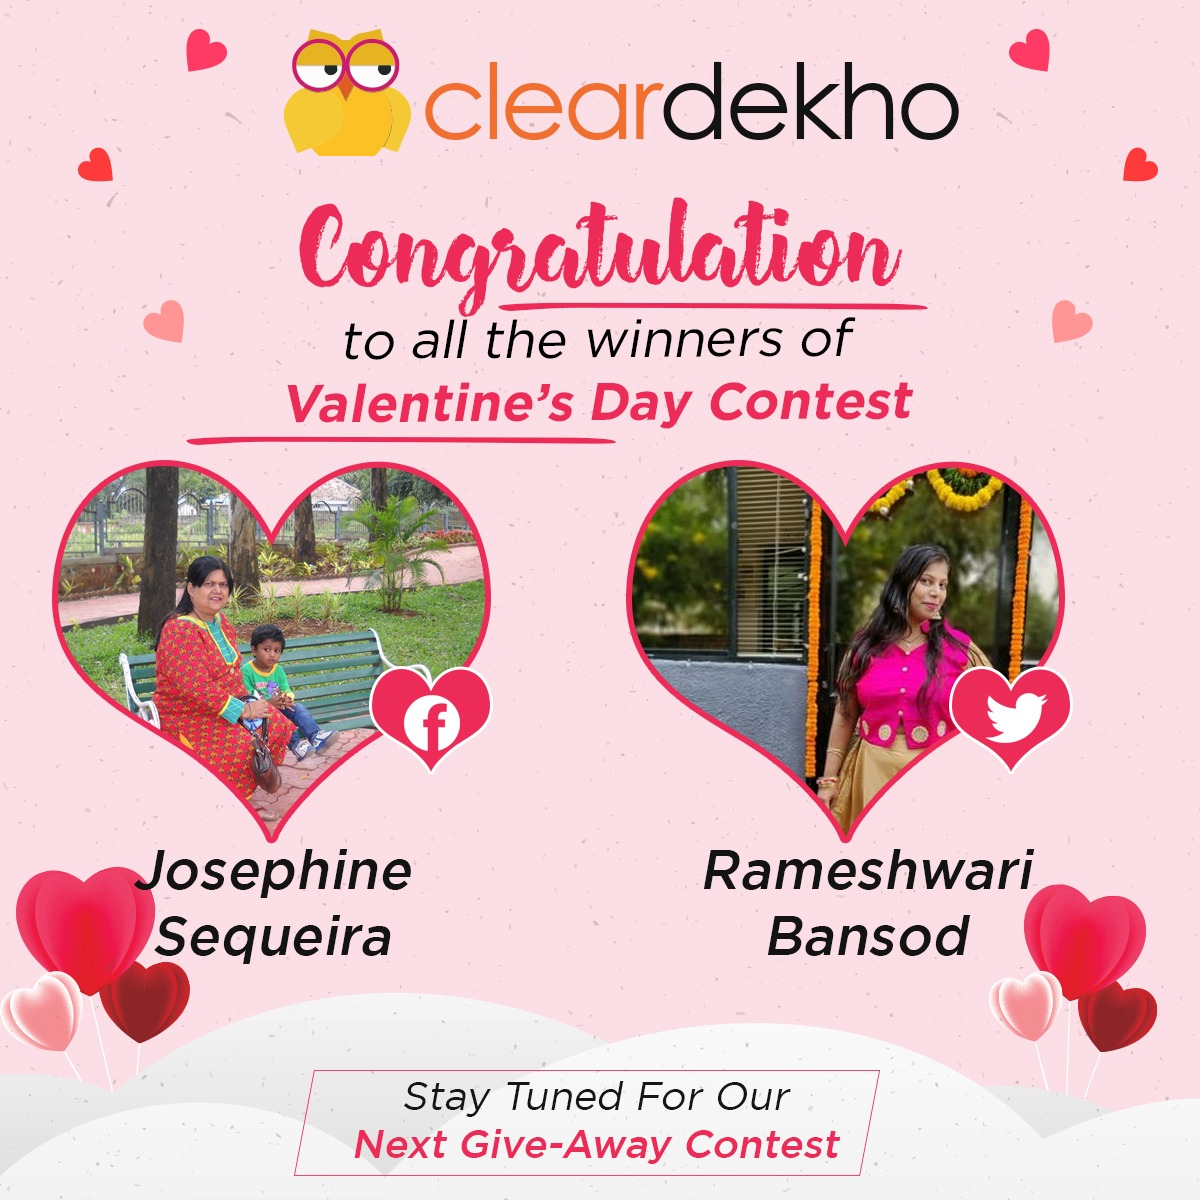 Congratulations To The Winners Of ClearDekho Valentine's Day Contest! Thank You All For Participating! Stay Tuned For Our Next Contest! @capreena1947  #ContestAlert #Valentines2020 #winners #freebies #startup #Entrepreneurship #franchise #retail #Trending #SaturdayMotivationpic.twitter.com/xjd0TImVYJ